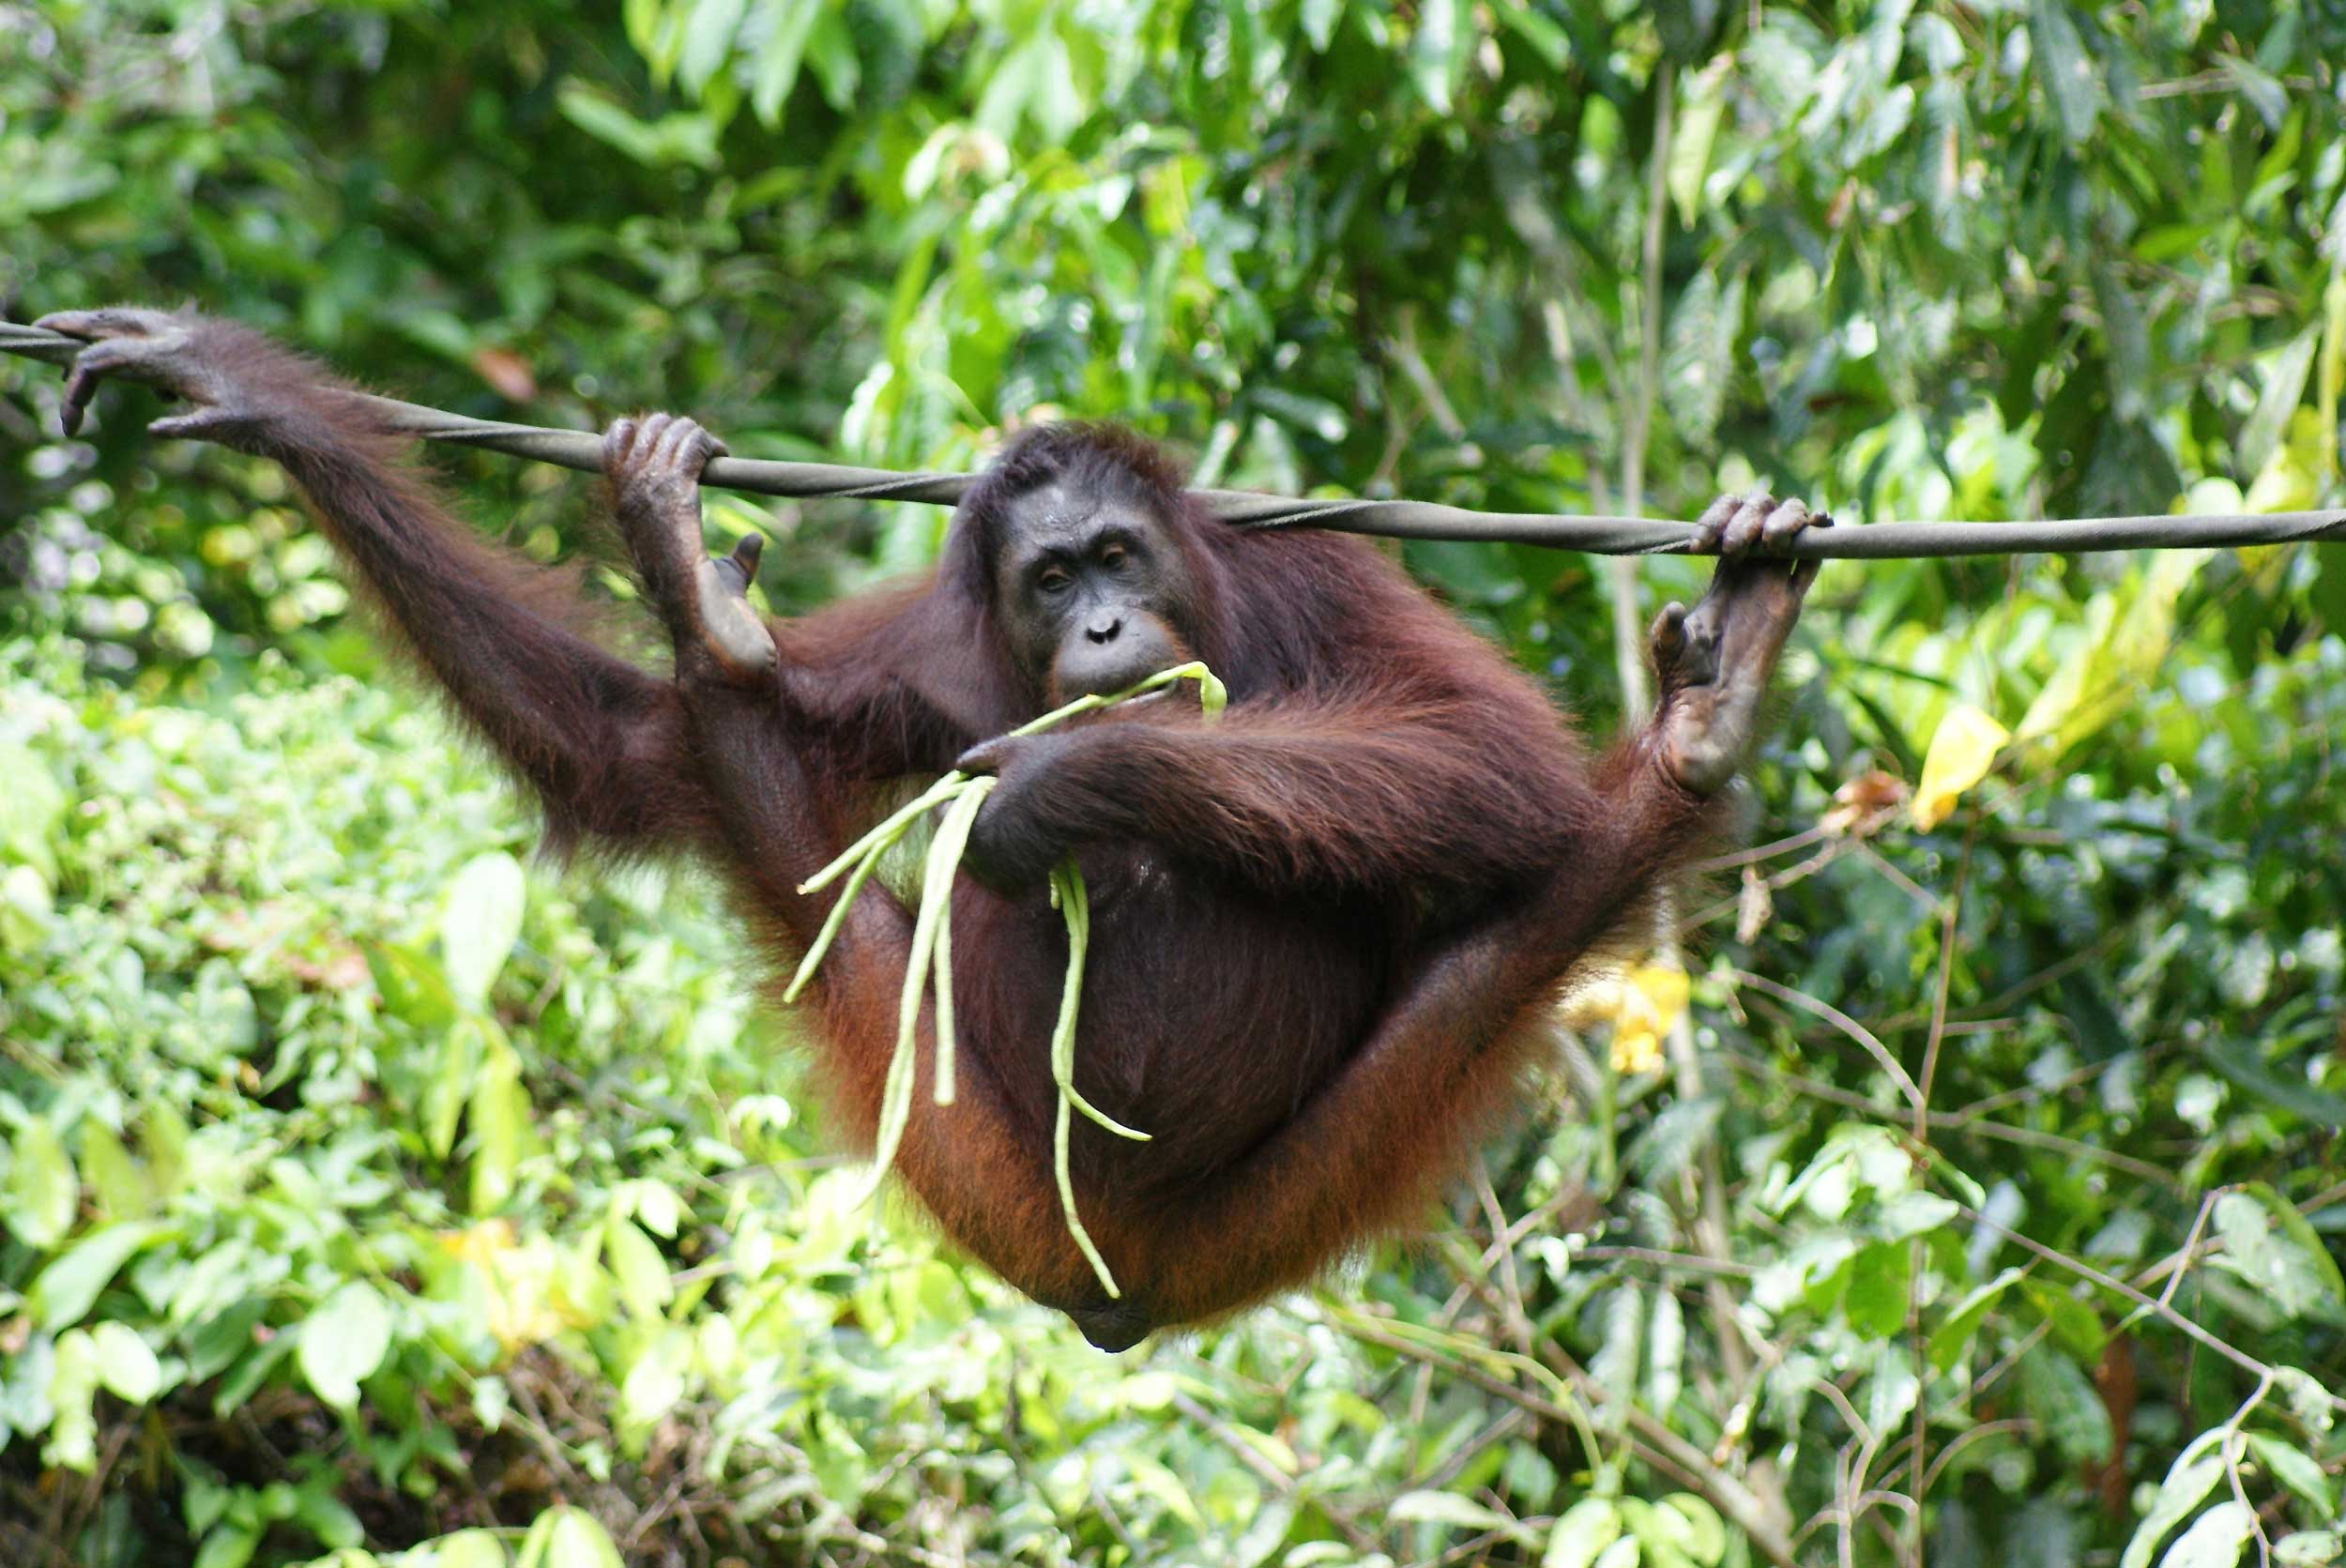 An orang utan eating leaves while clinging onto a wire with both feet and an arm in Borneo